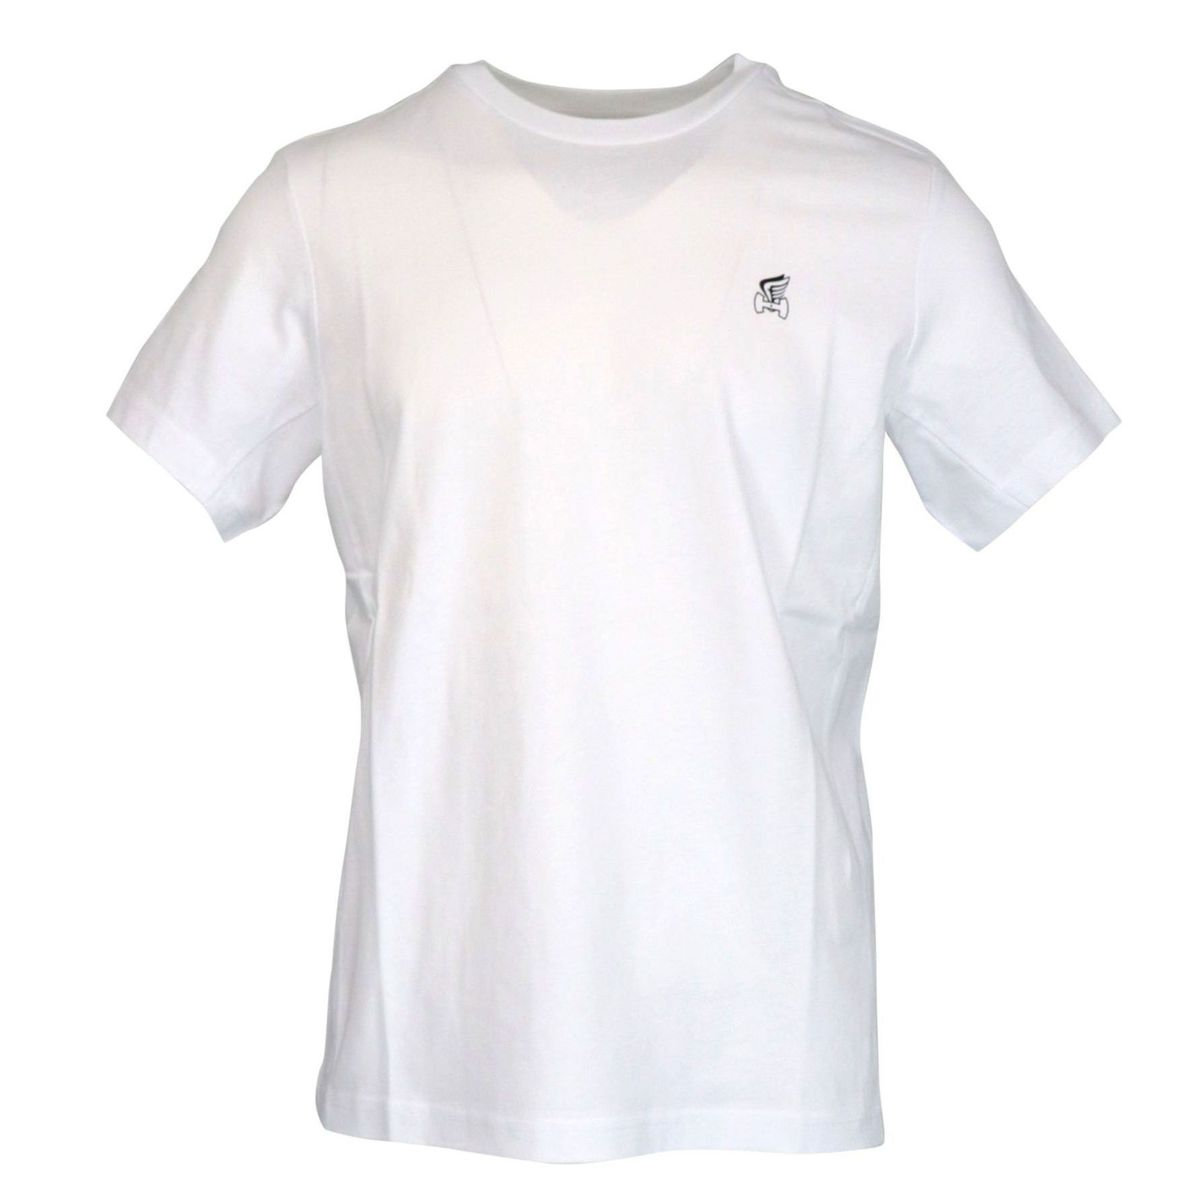 Short sleeve cotton T-shirt with small H logo and wing White Hogan